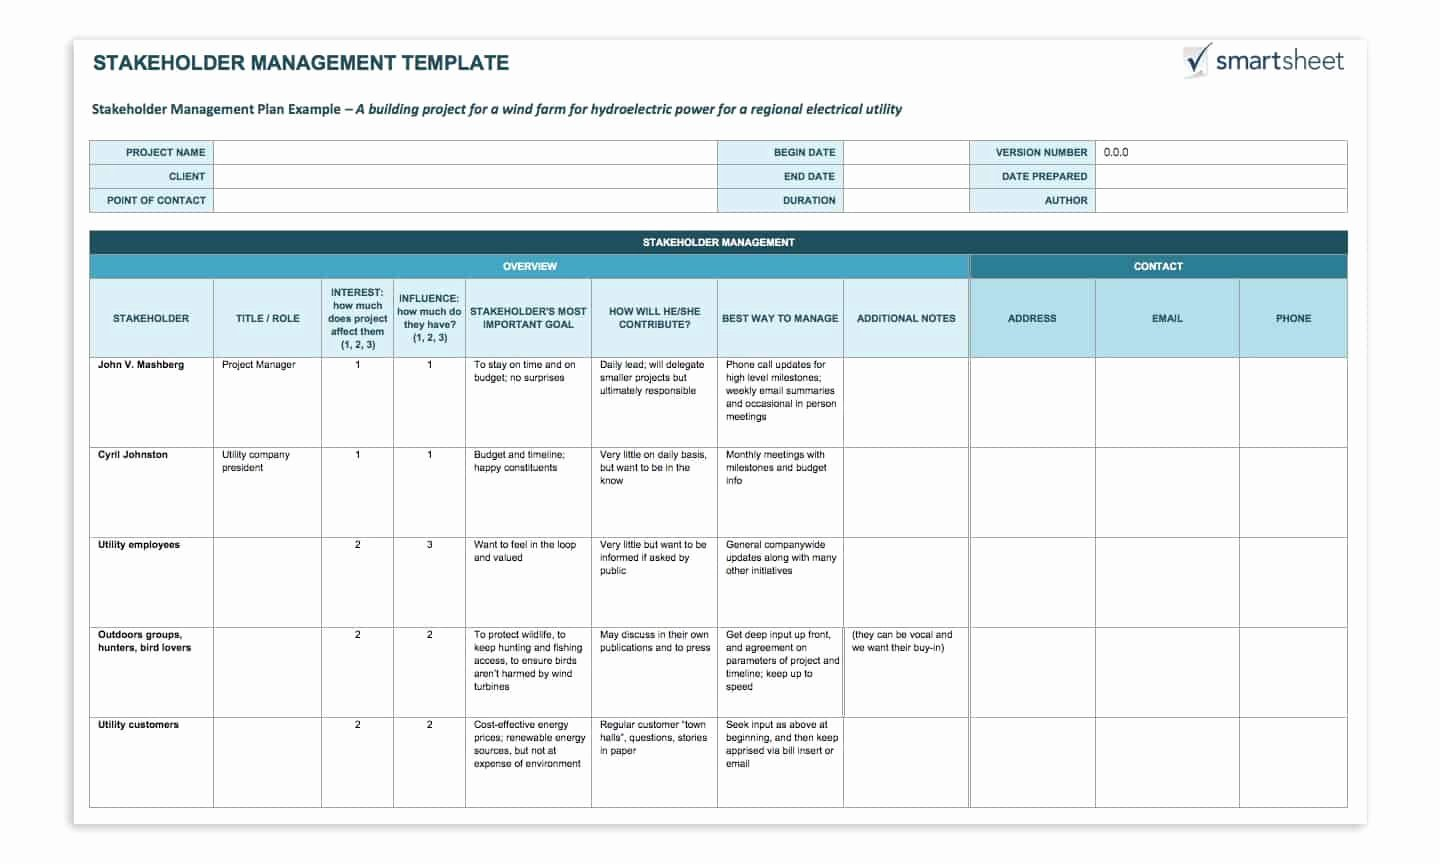 Stakeholder Analysis Template Excel Beautiful How to Create A Stakeholder Management Plan Smartsheet